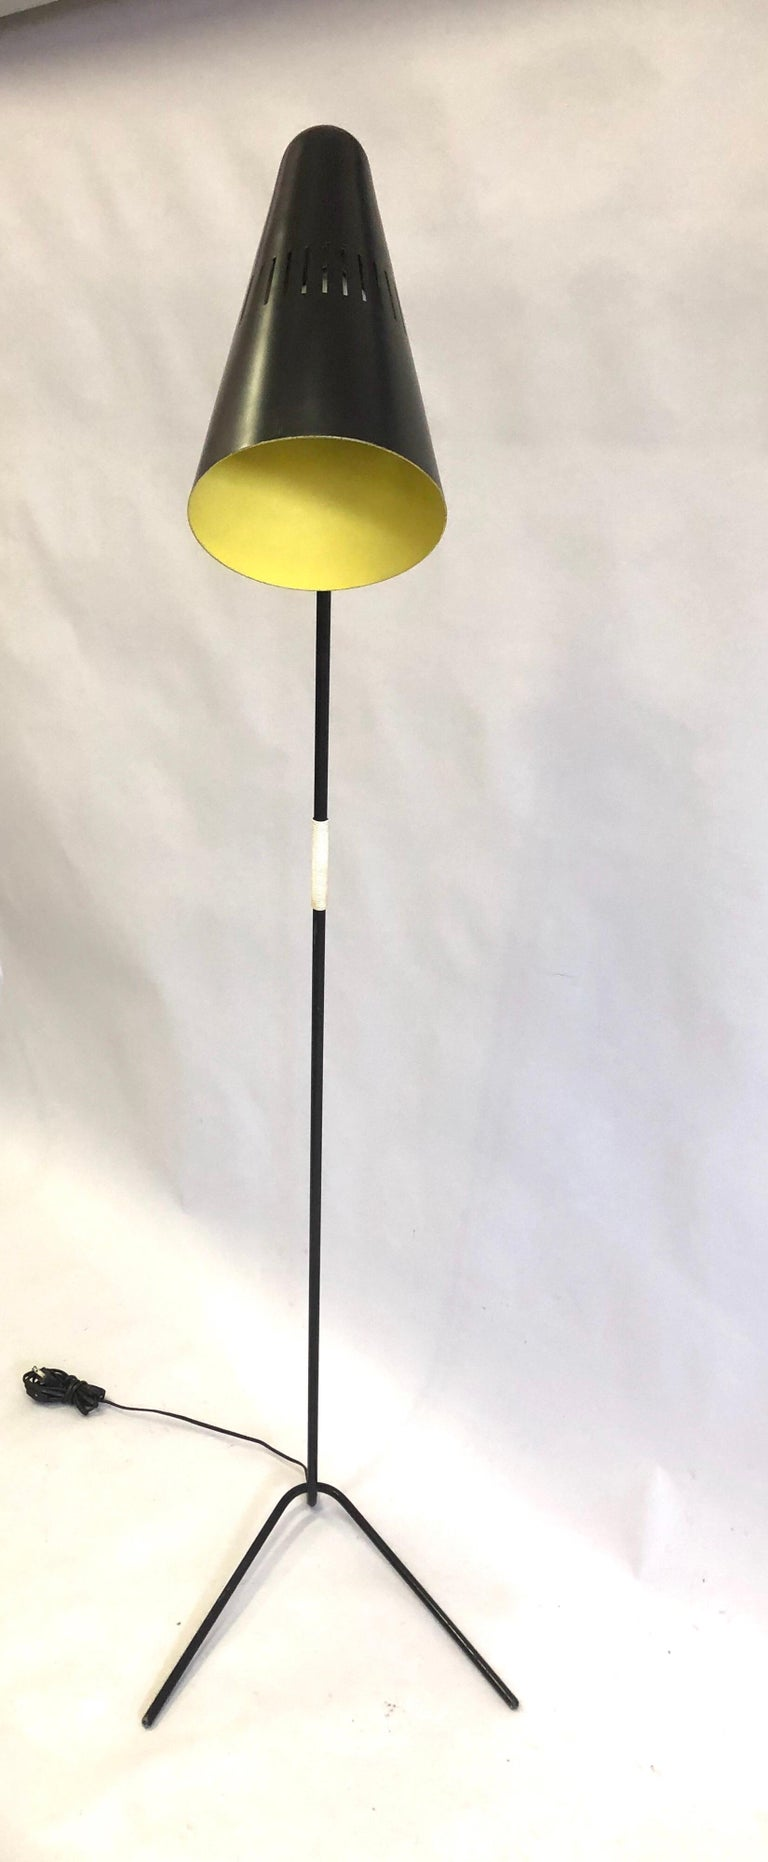 20th Century French Mid-Century Modern Prototype Floor Lamp, Serge Mouille & Pierre Guariche For Sale